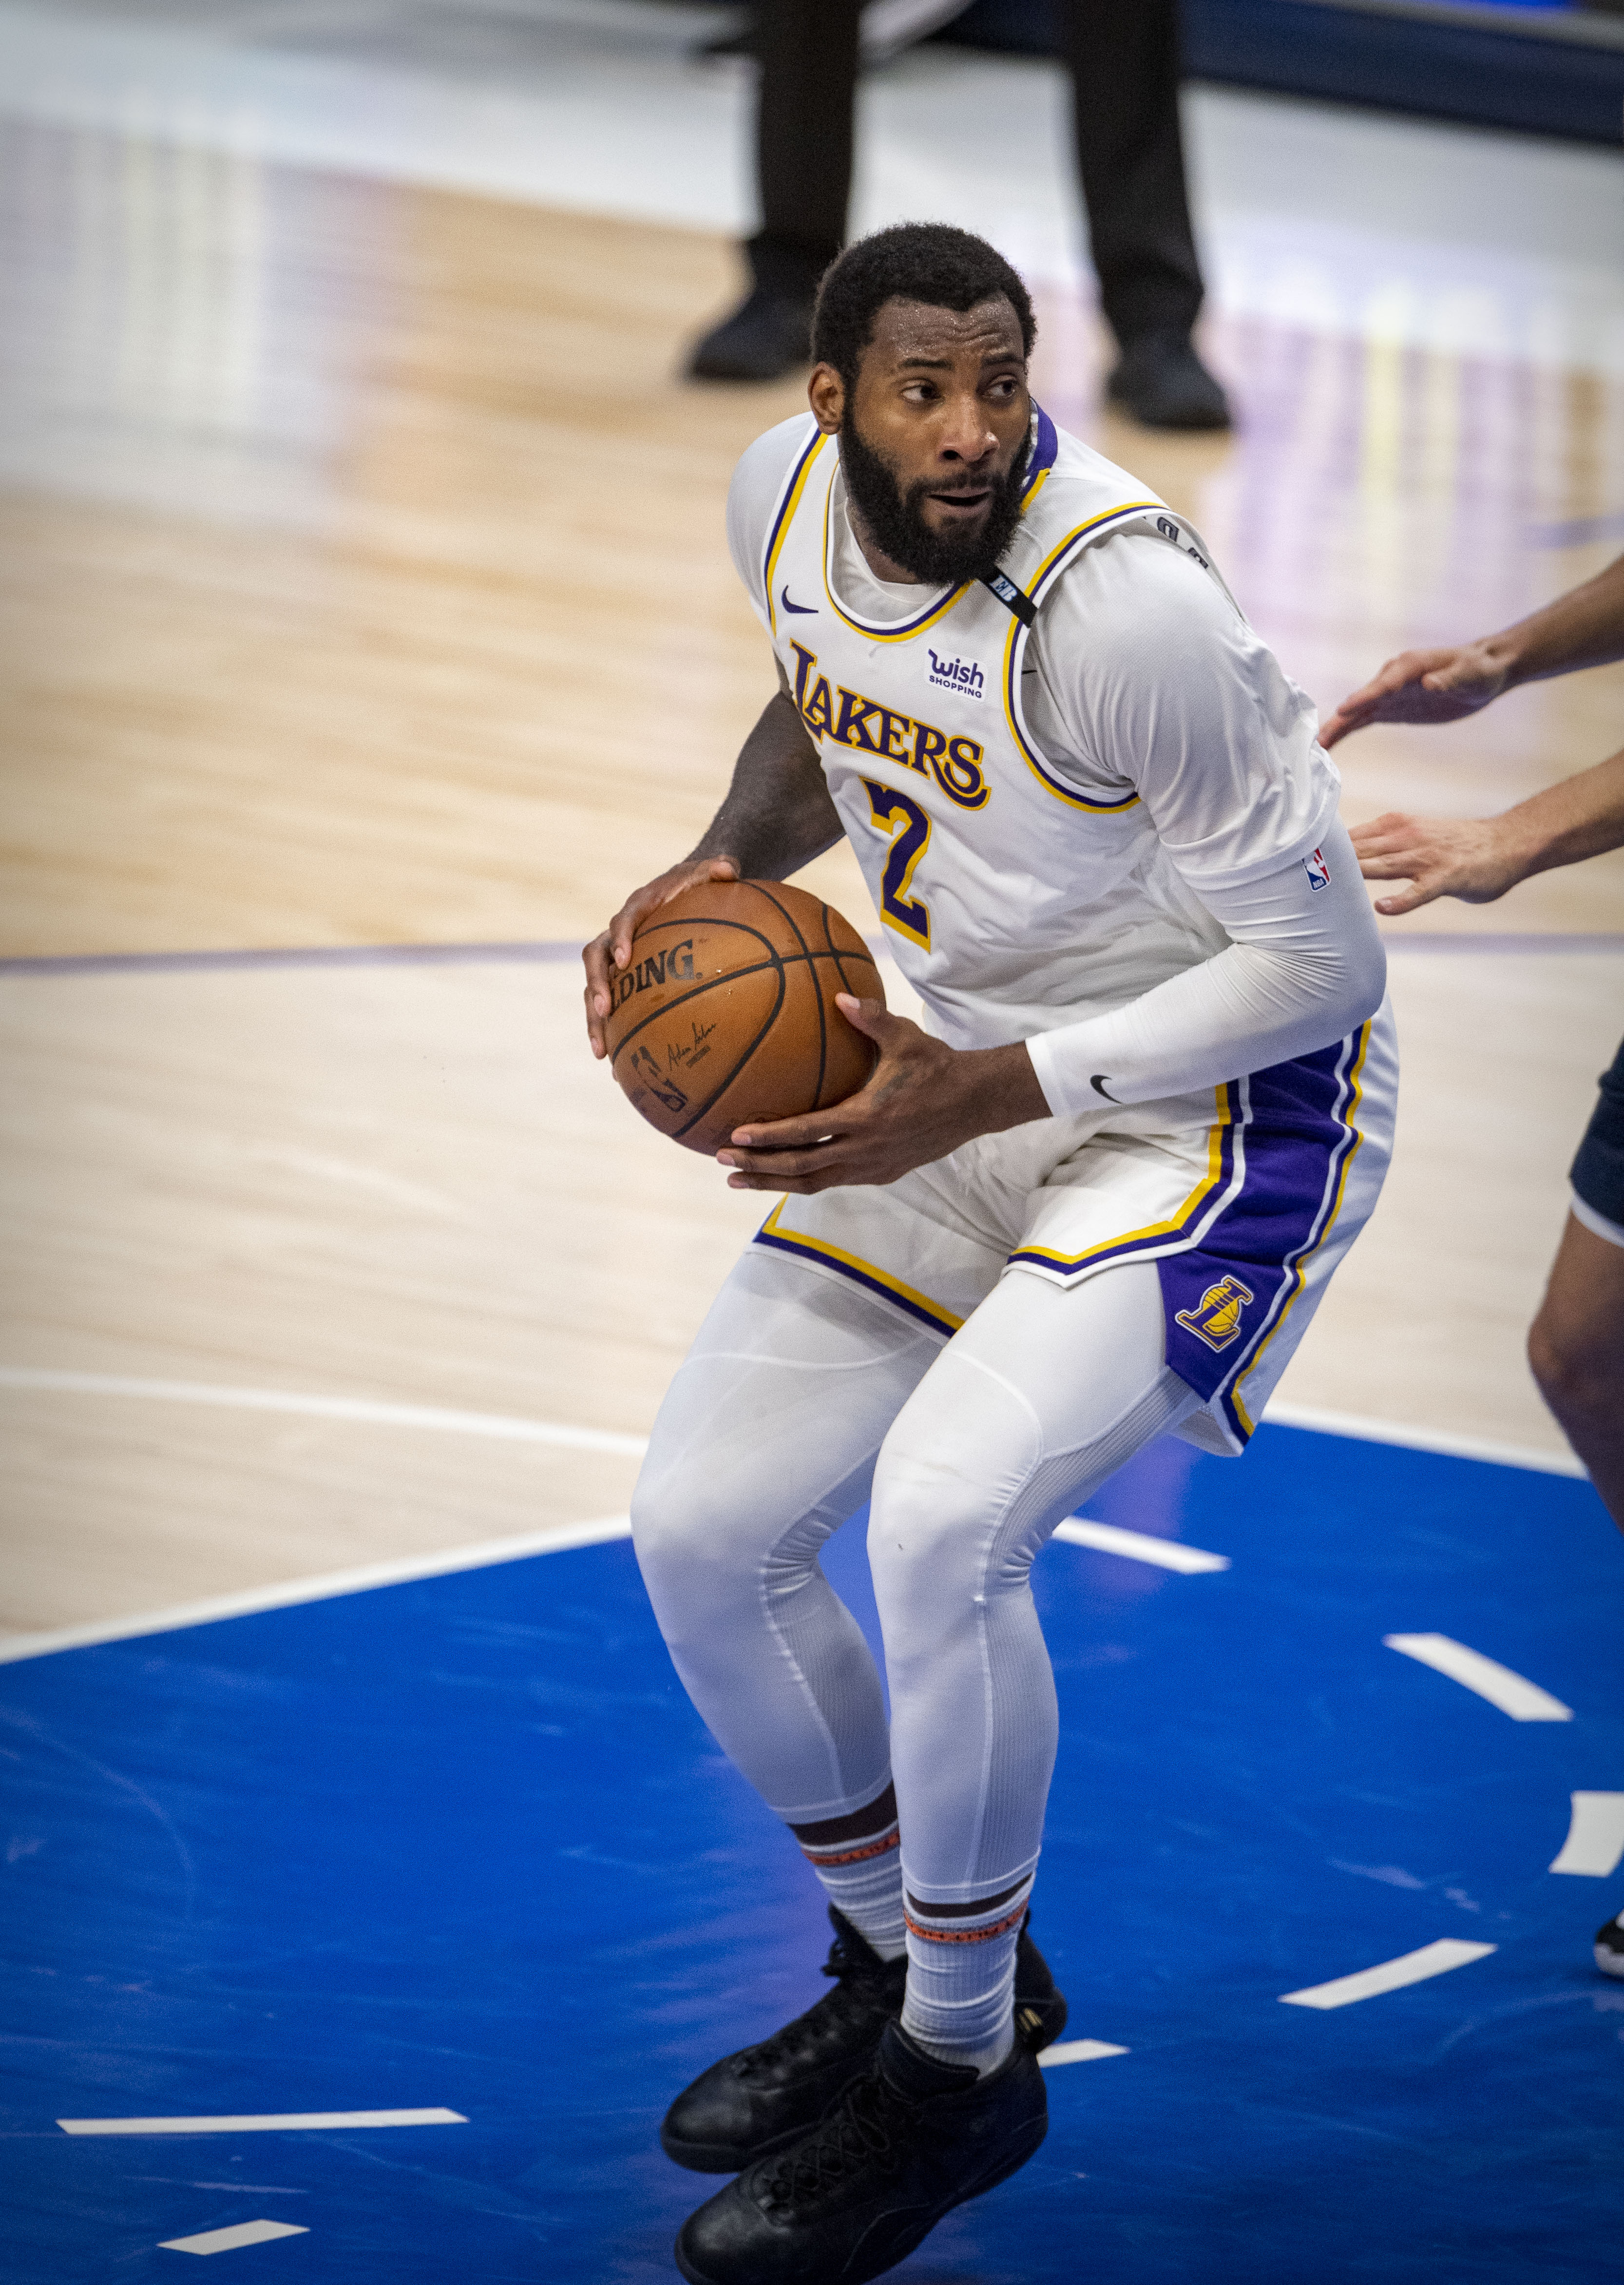 Los Angeles Lakers center Andre Drummond in action during the game between the Los Angeles Lakers and the Dallas Mavericks at the American Airlines Center.